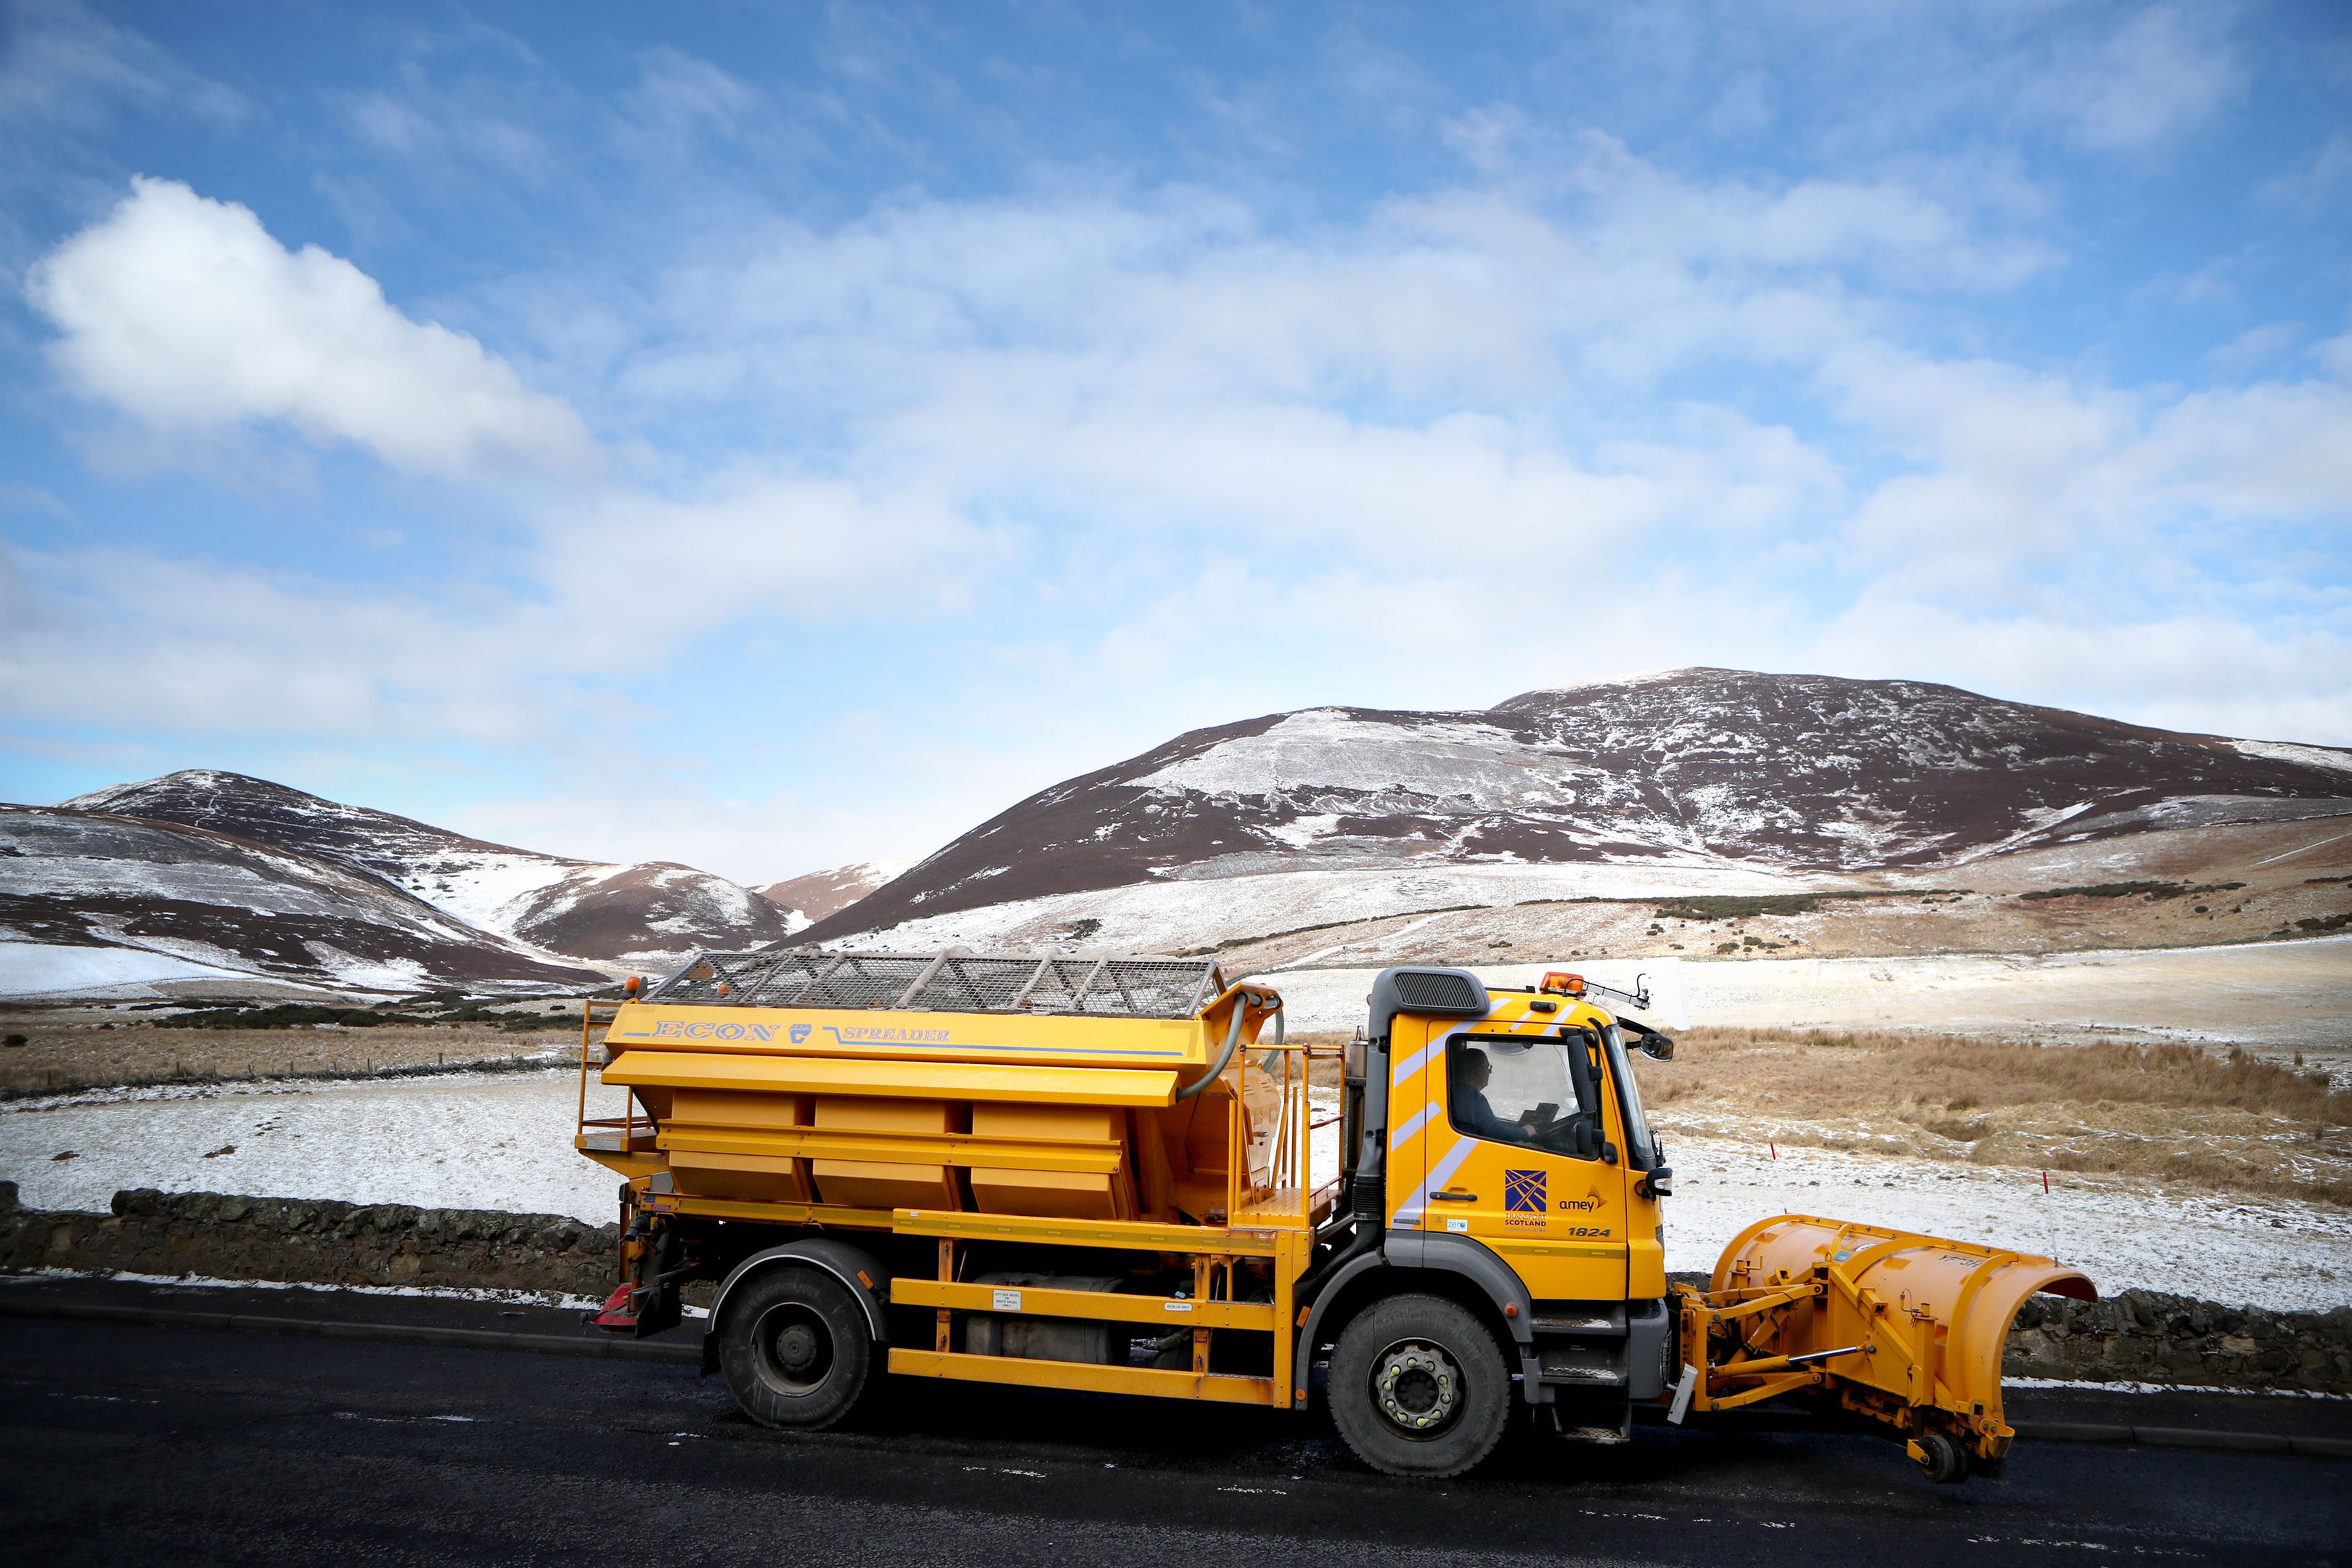 A snow plough on the A702 near Penicuik in Midlothian, following heavy overnight snowfall (Jane Barlow/PA Wire)